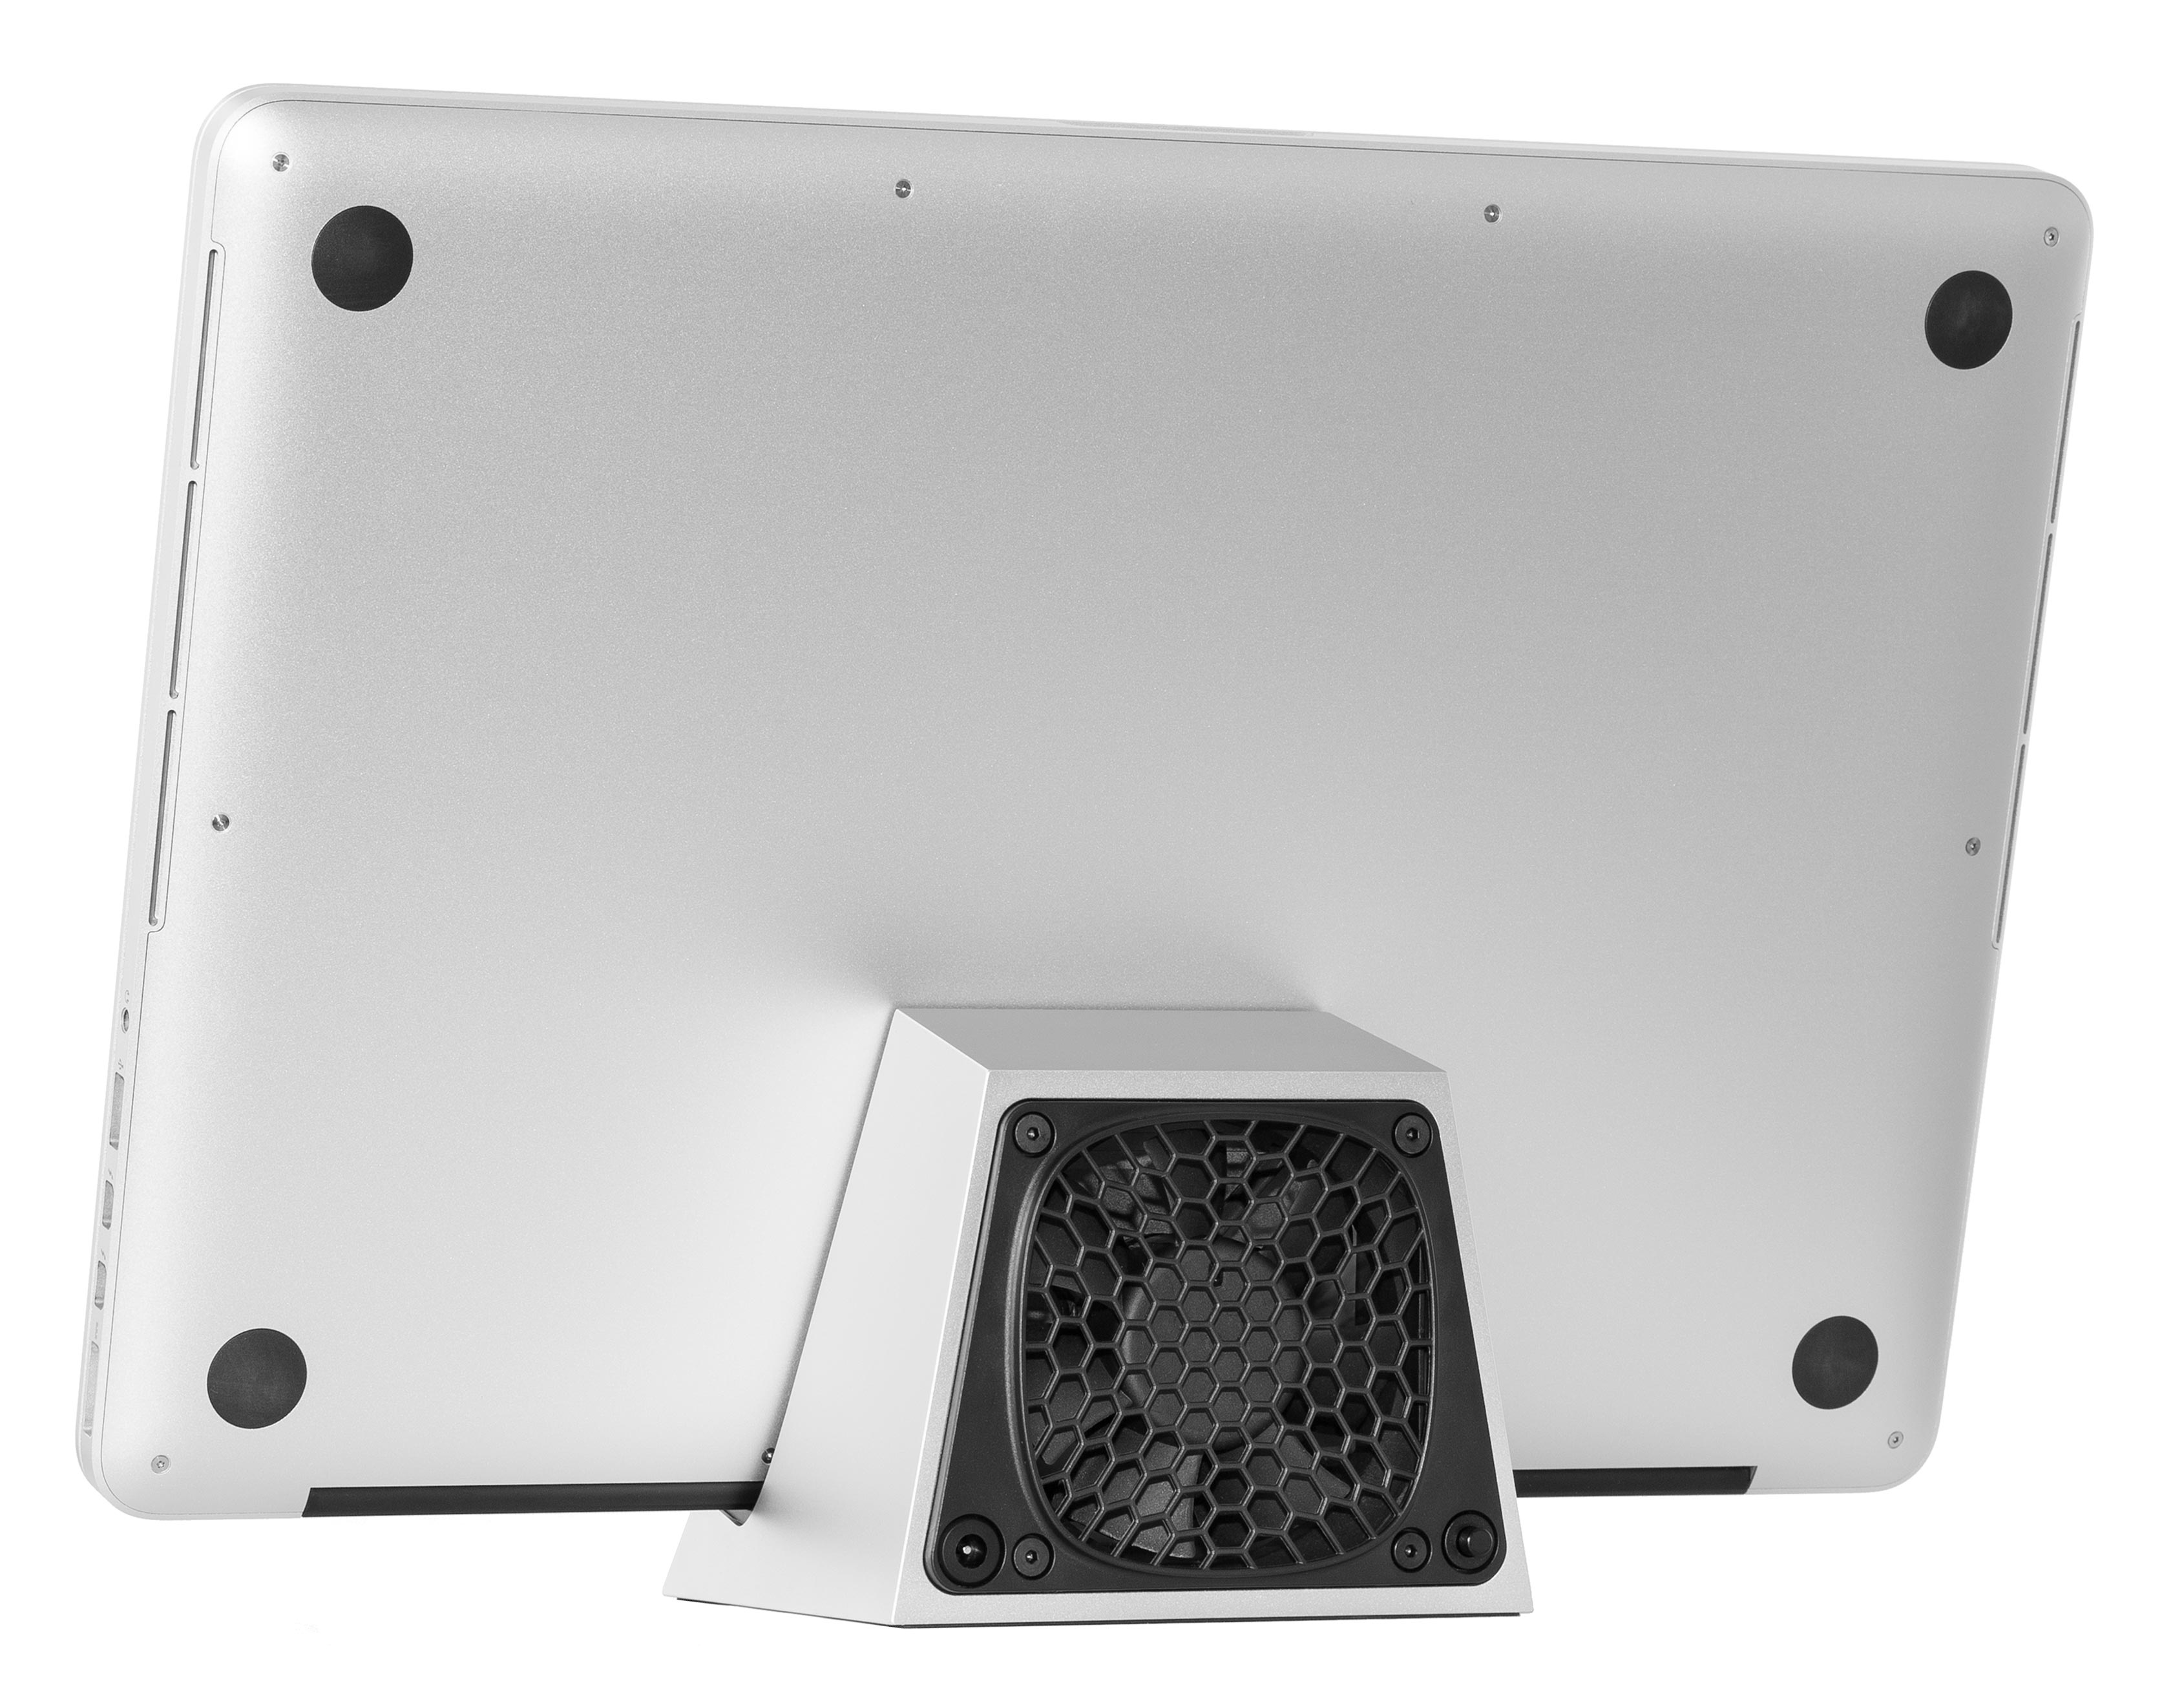 SVALT D Performance Cooling Dock with Apple MacBook Pro 15-inch Retina display back view